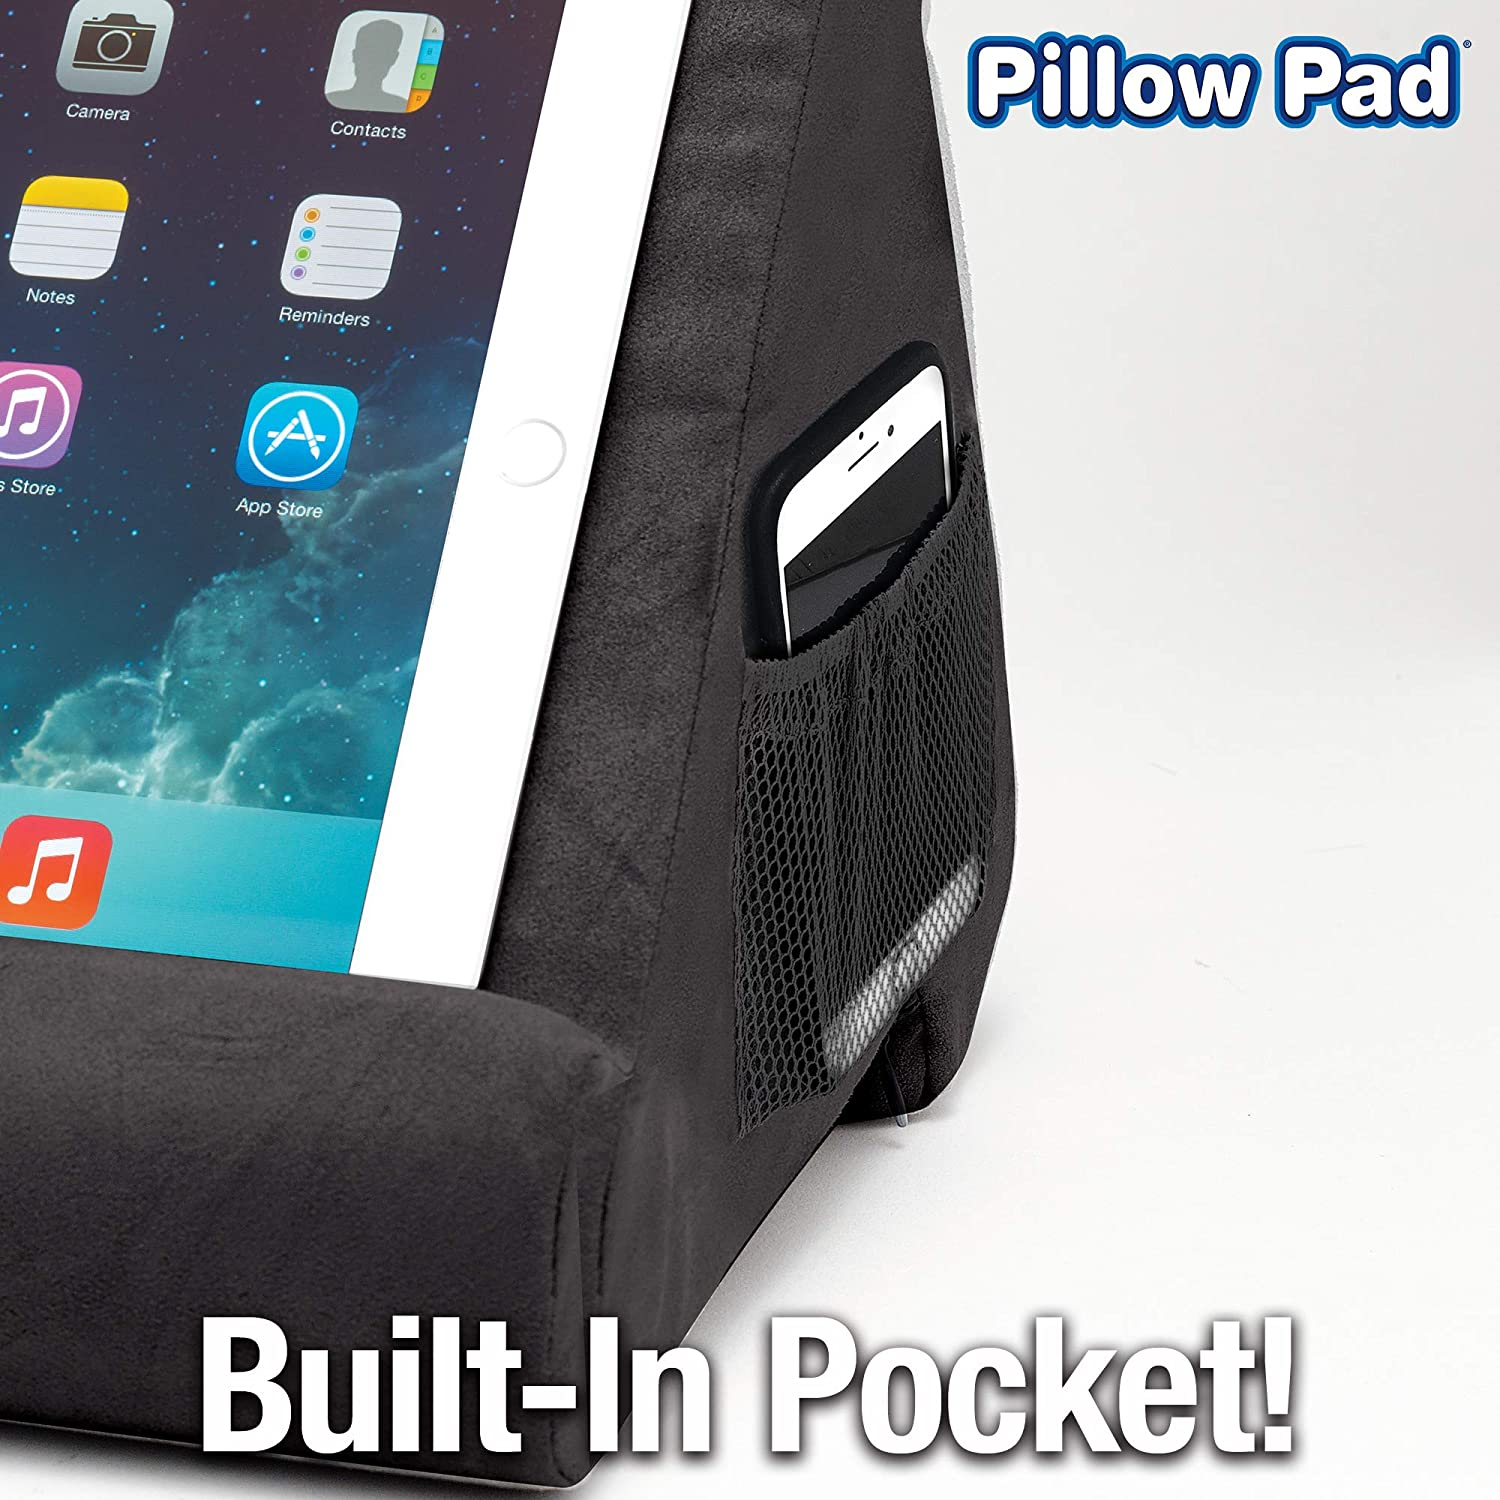 Black Friday Sale - Pillow Pad Multi-Angle Soft Tablet Stand